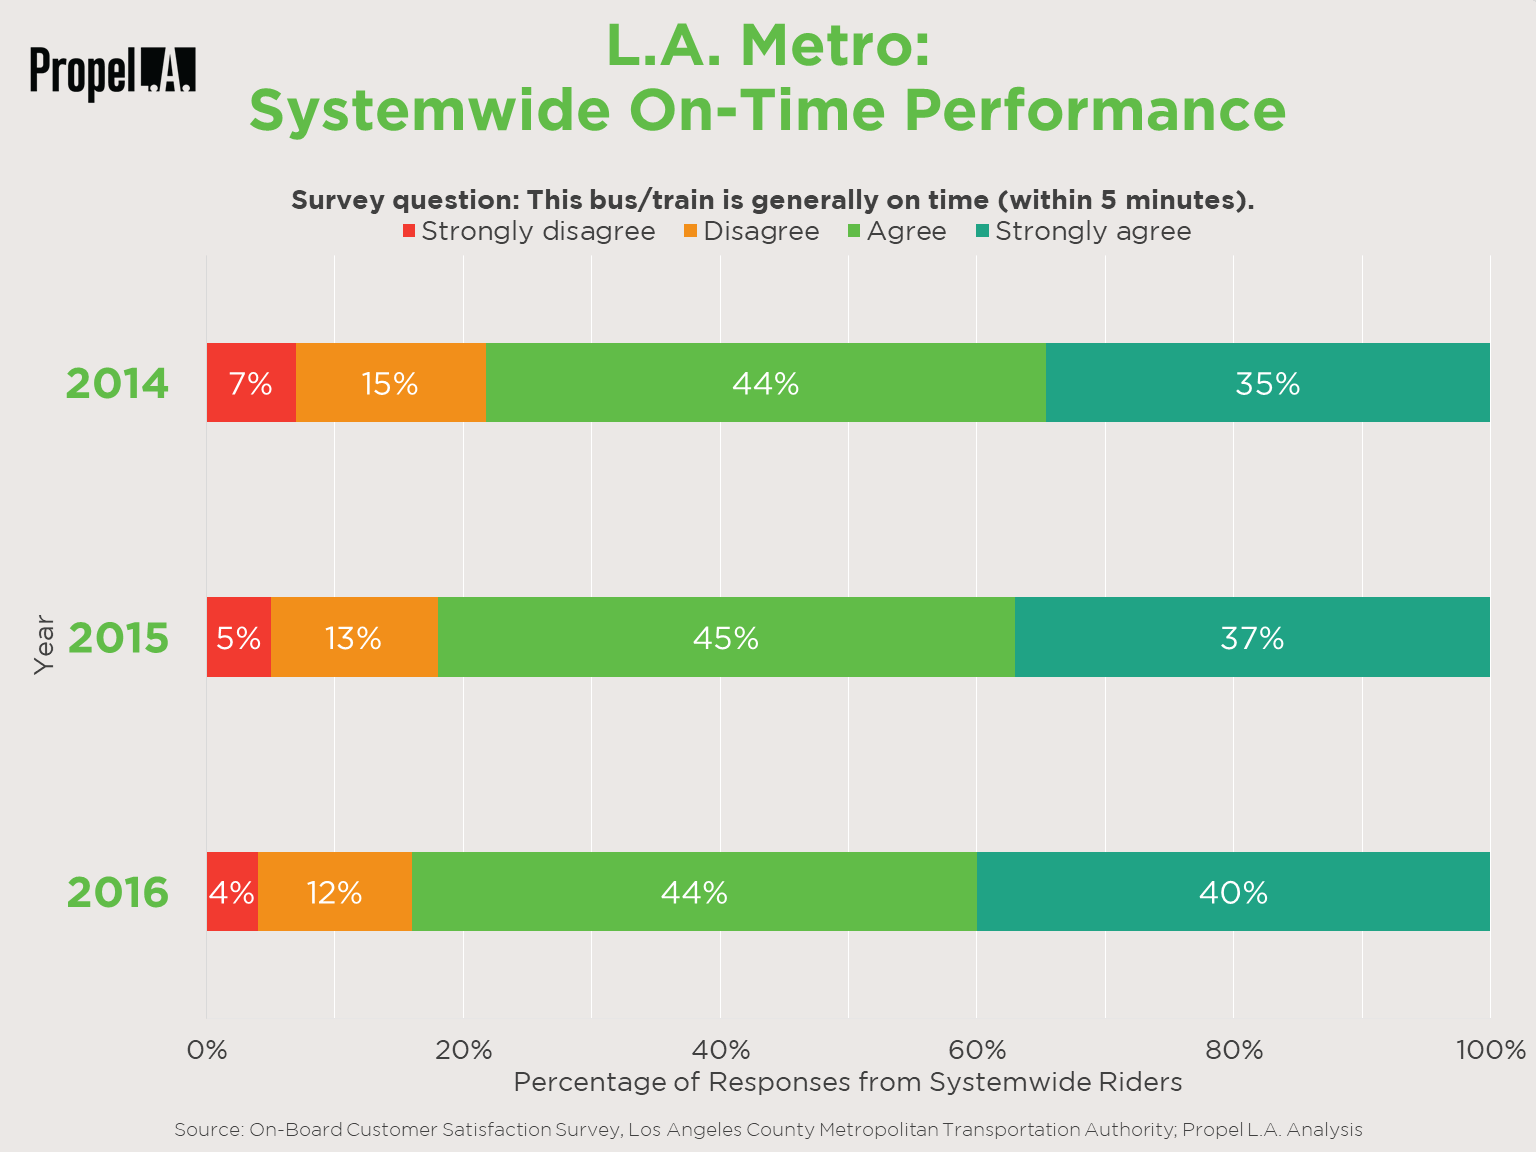 L.A. Metro Systemwide On-Time Performance